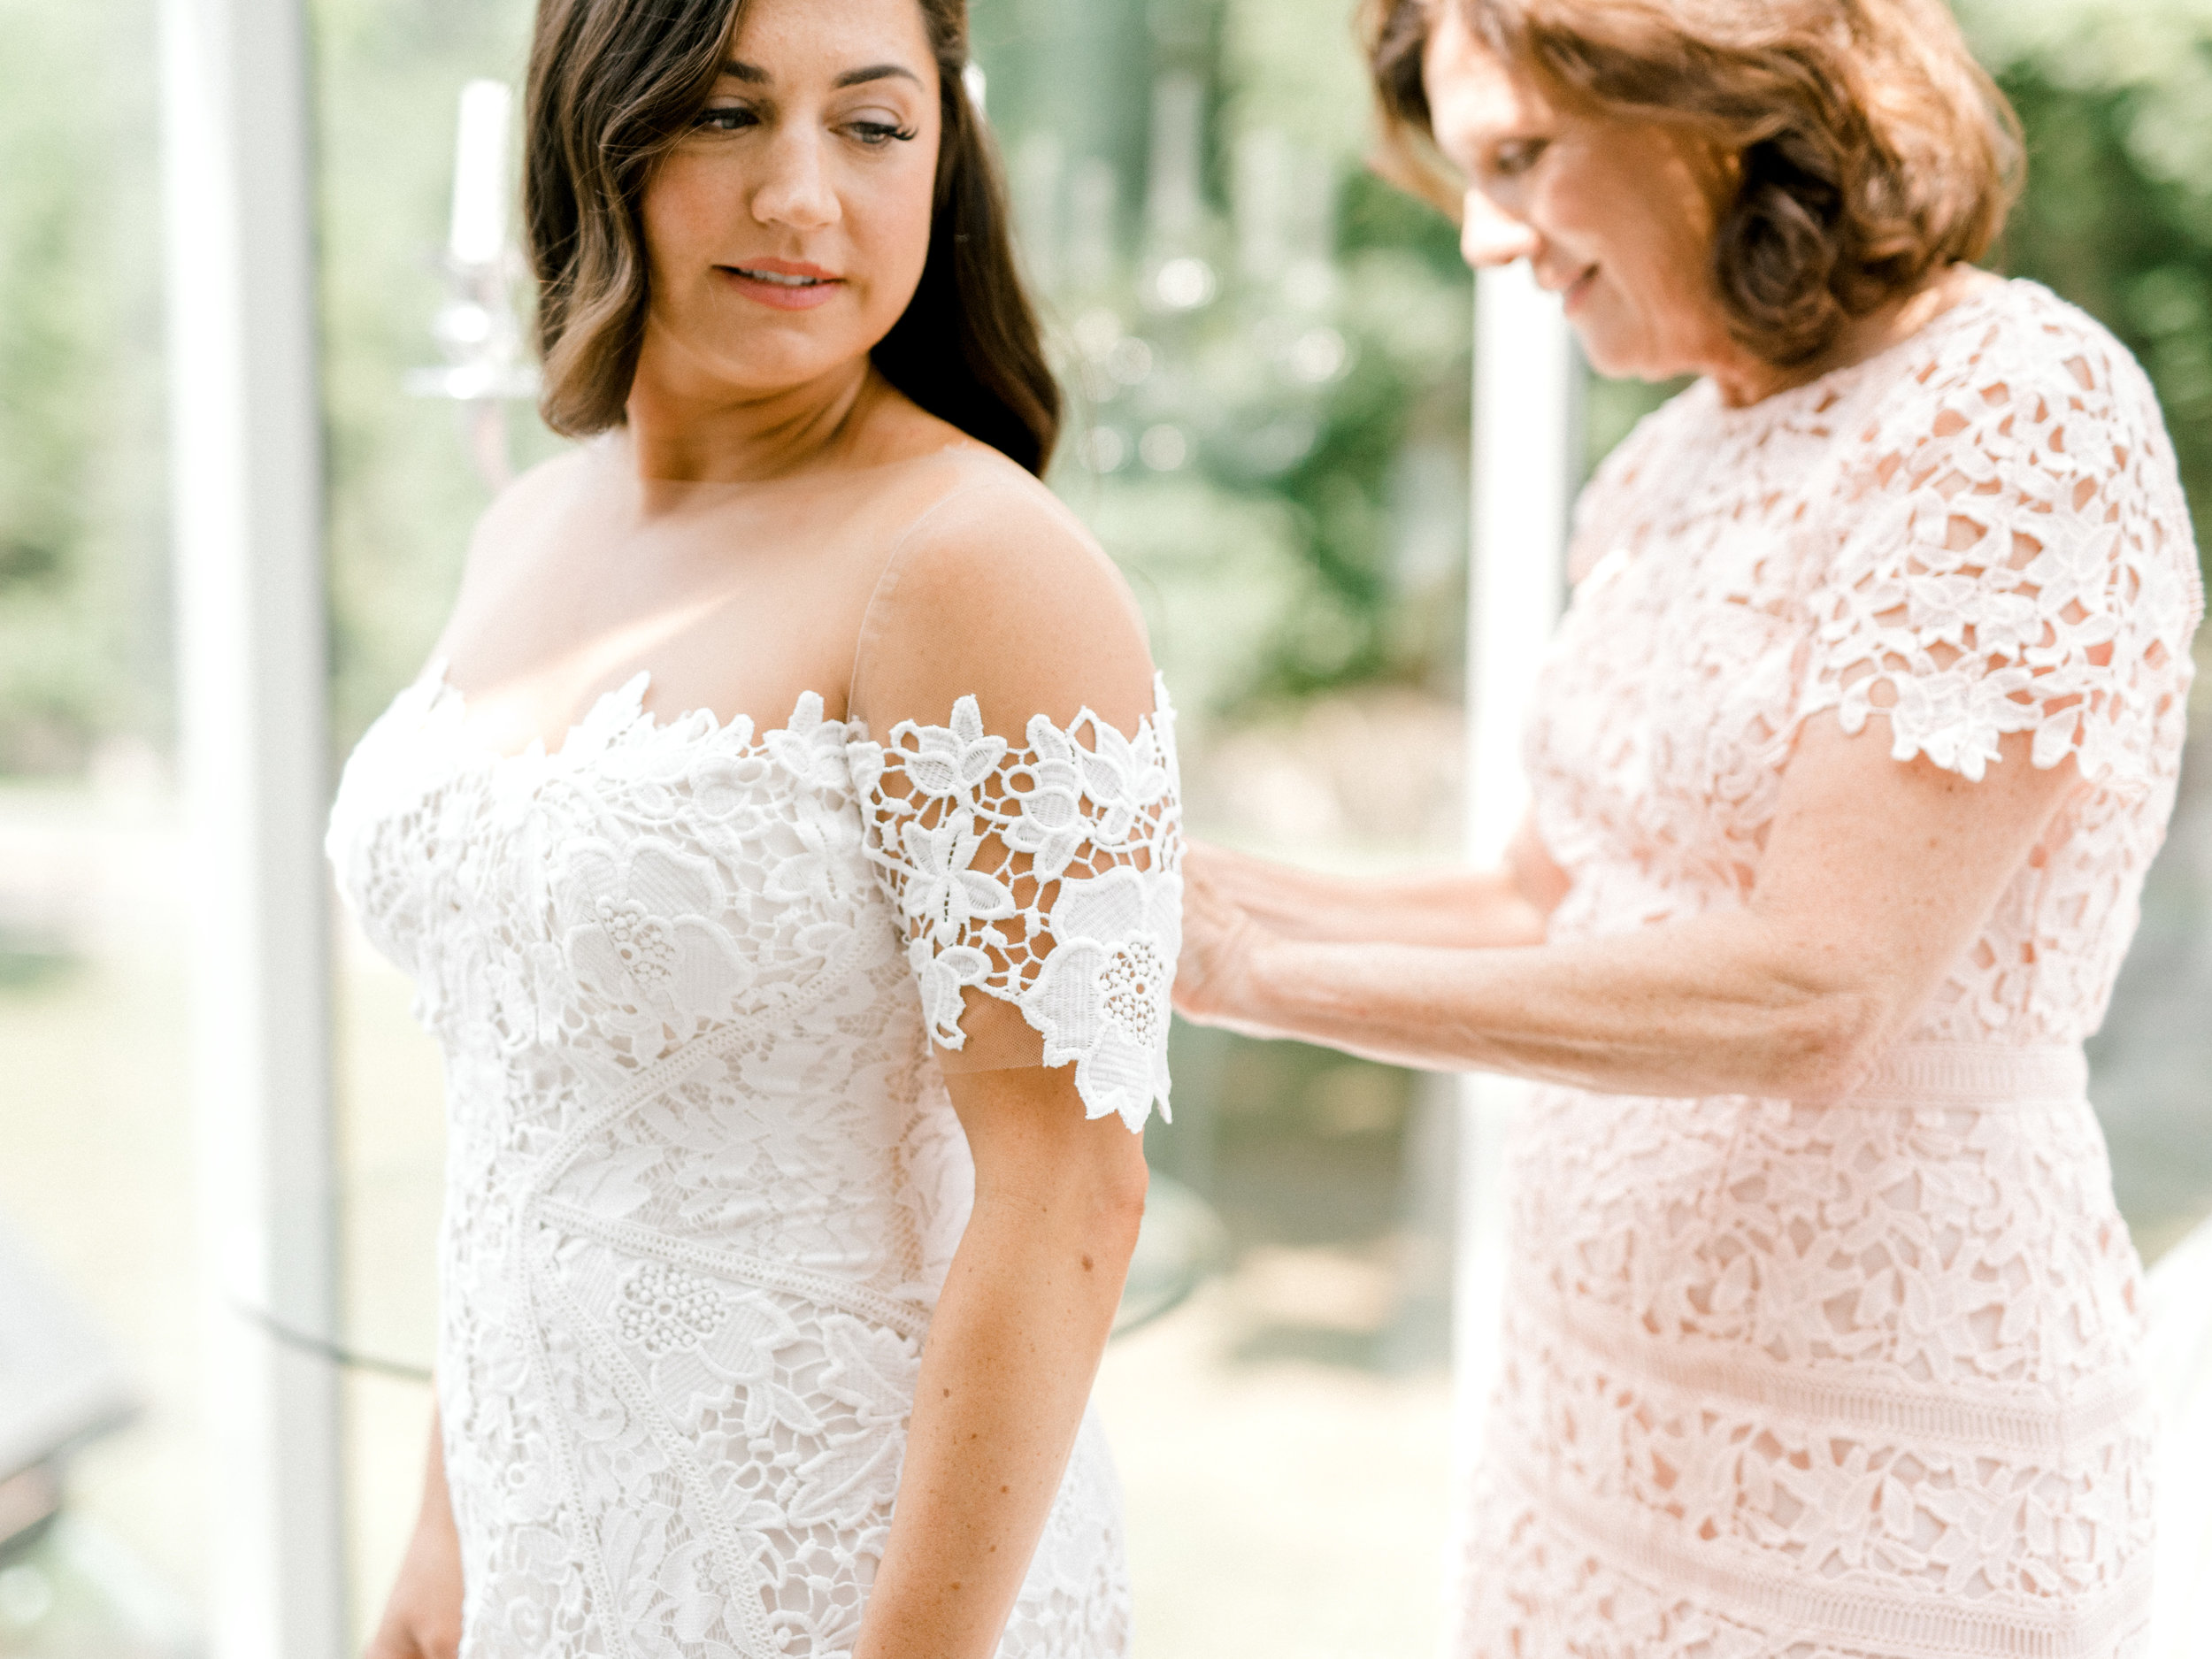 Lindsey's mom helps her get into her Lover's Society dress in this light filled AirBnb before her colorful and modern wedding day at Hotel du Village.